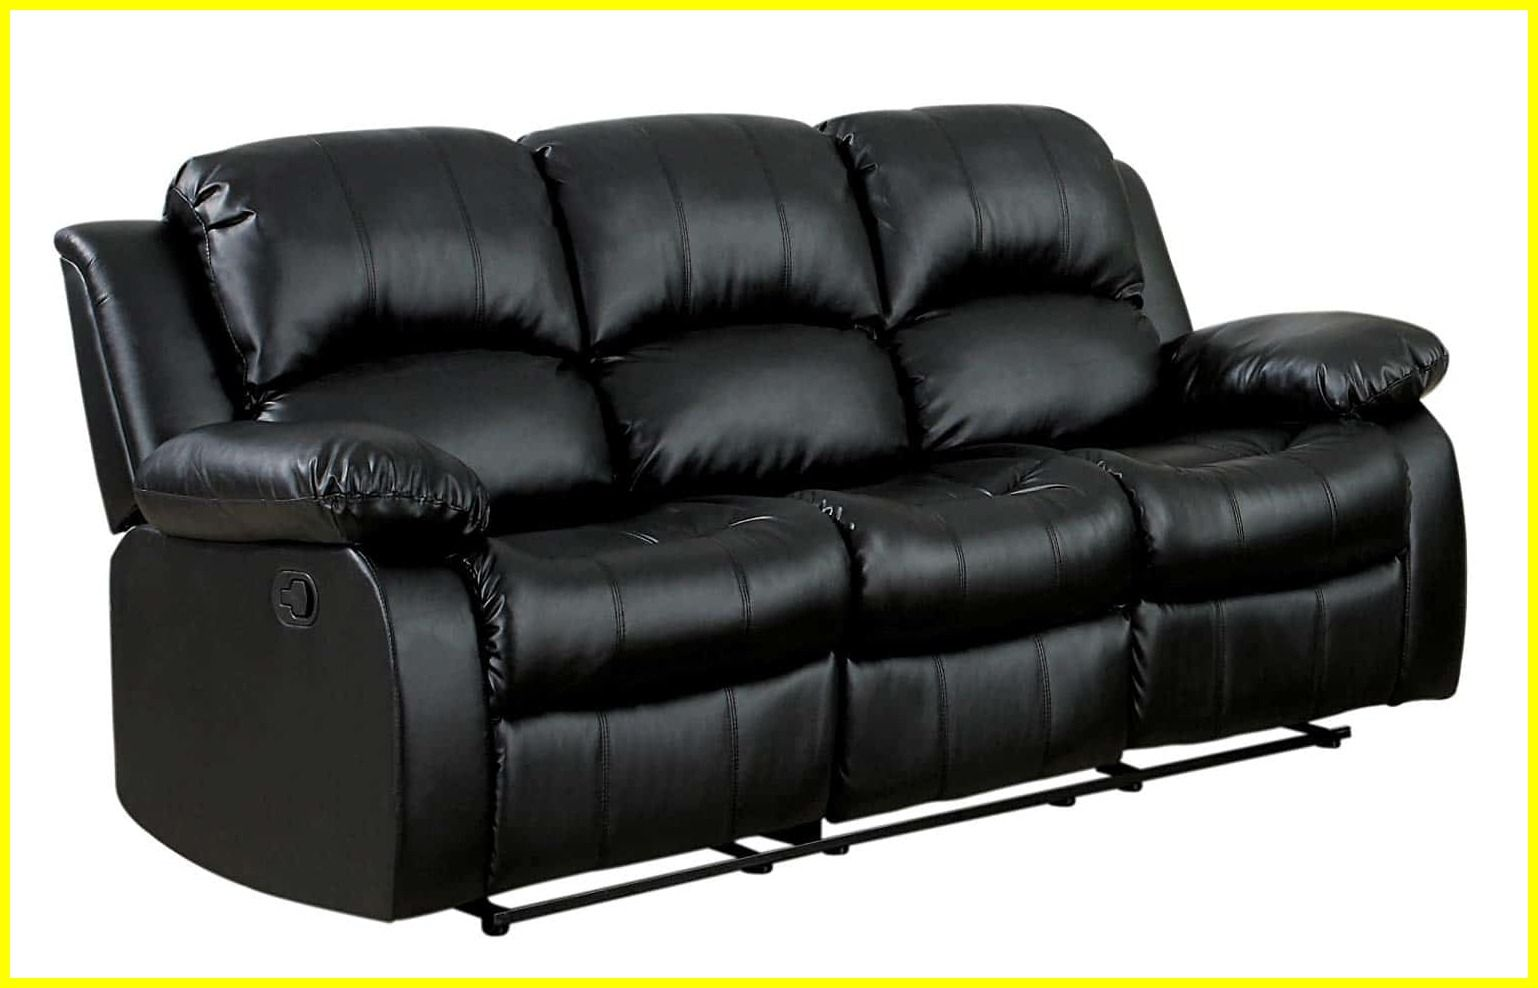 Leather Sofa Bed An Elegant Extra Bed At Home Darbylanefurniture Com In 2020 Sofa Bed Brown Comfortable Futon Faux Leather Sofa